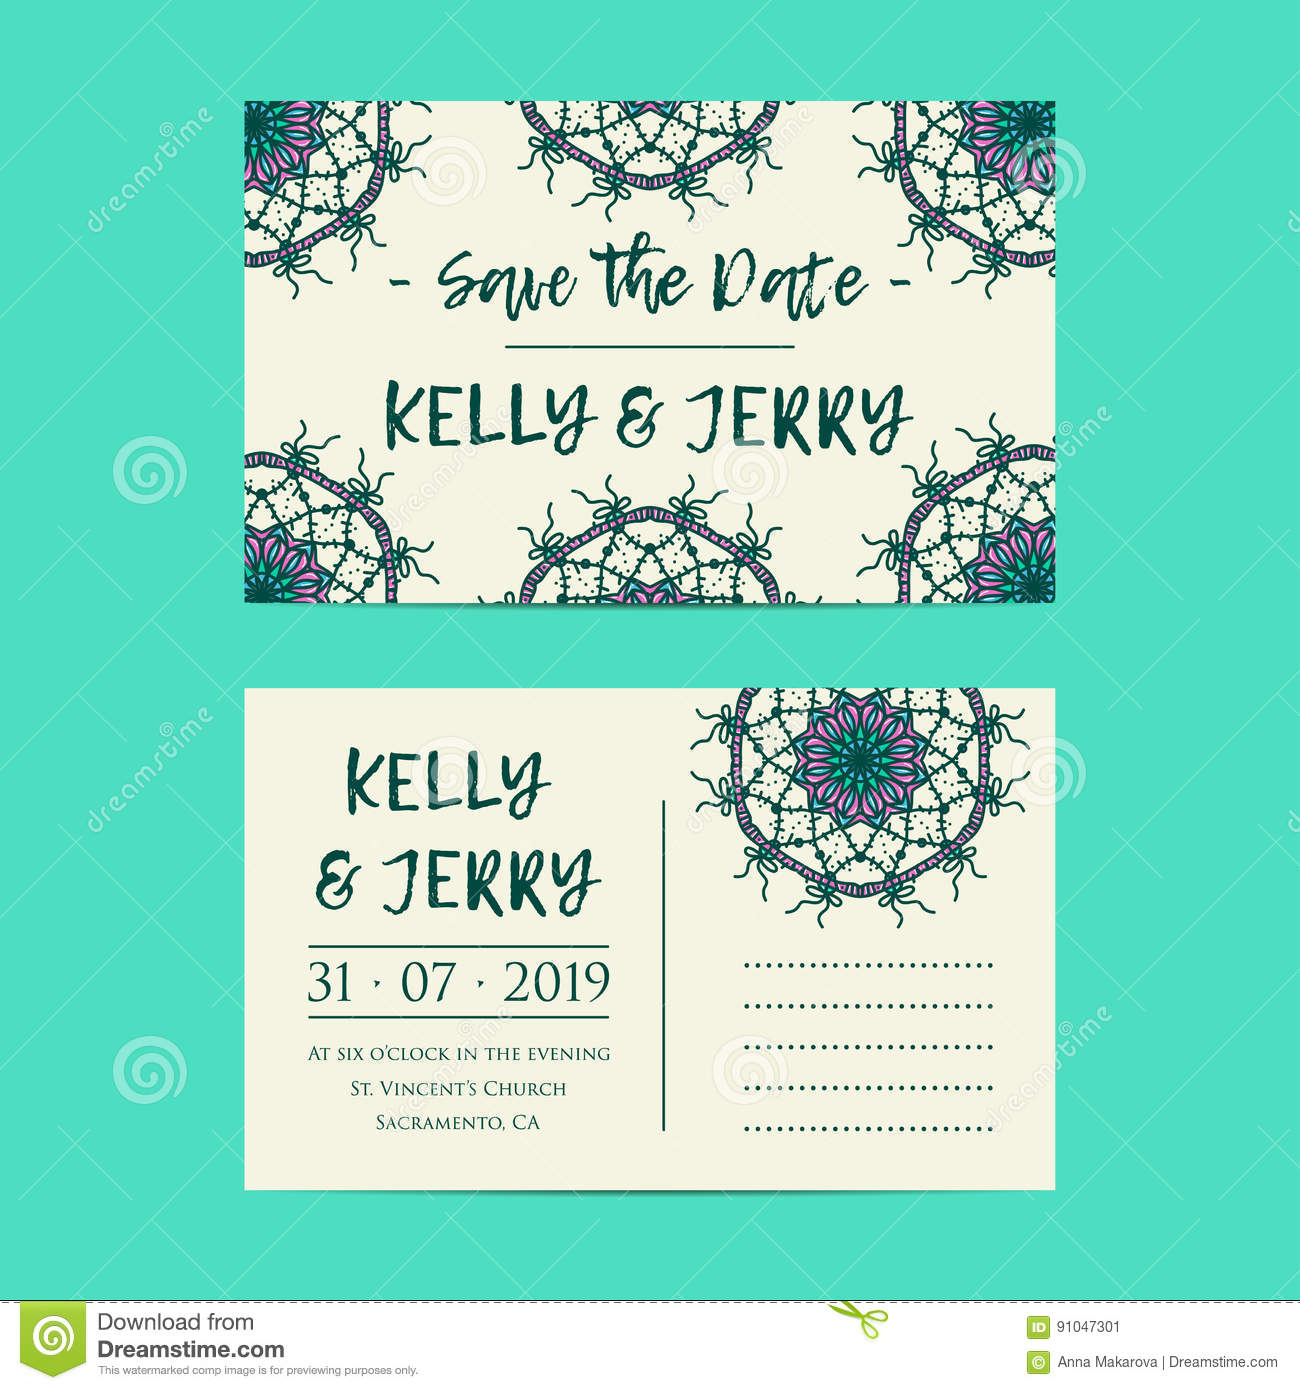 Vintage template design layout for wedding invitation wedding download vintage template design layout for wedding invitation wedding invitation thank you card stopboris Image collections